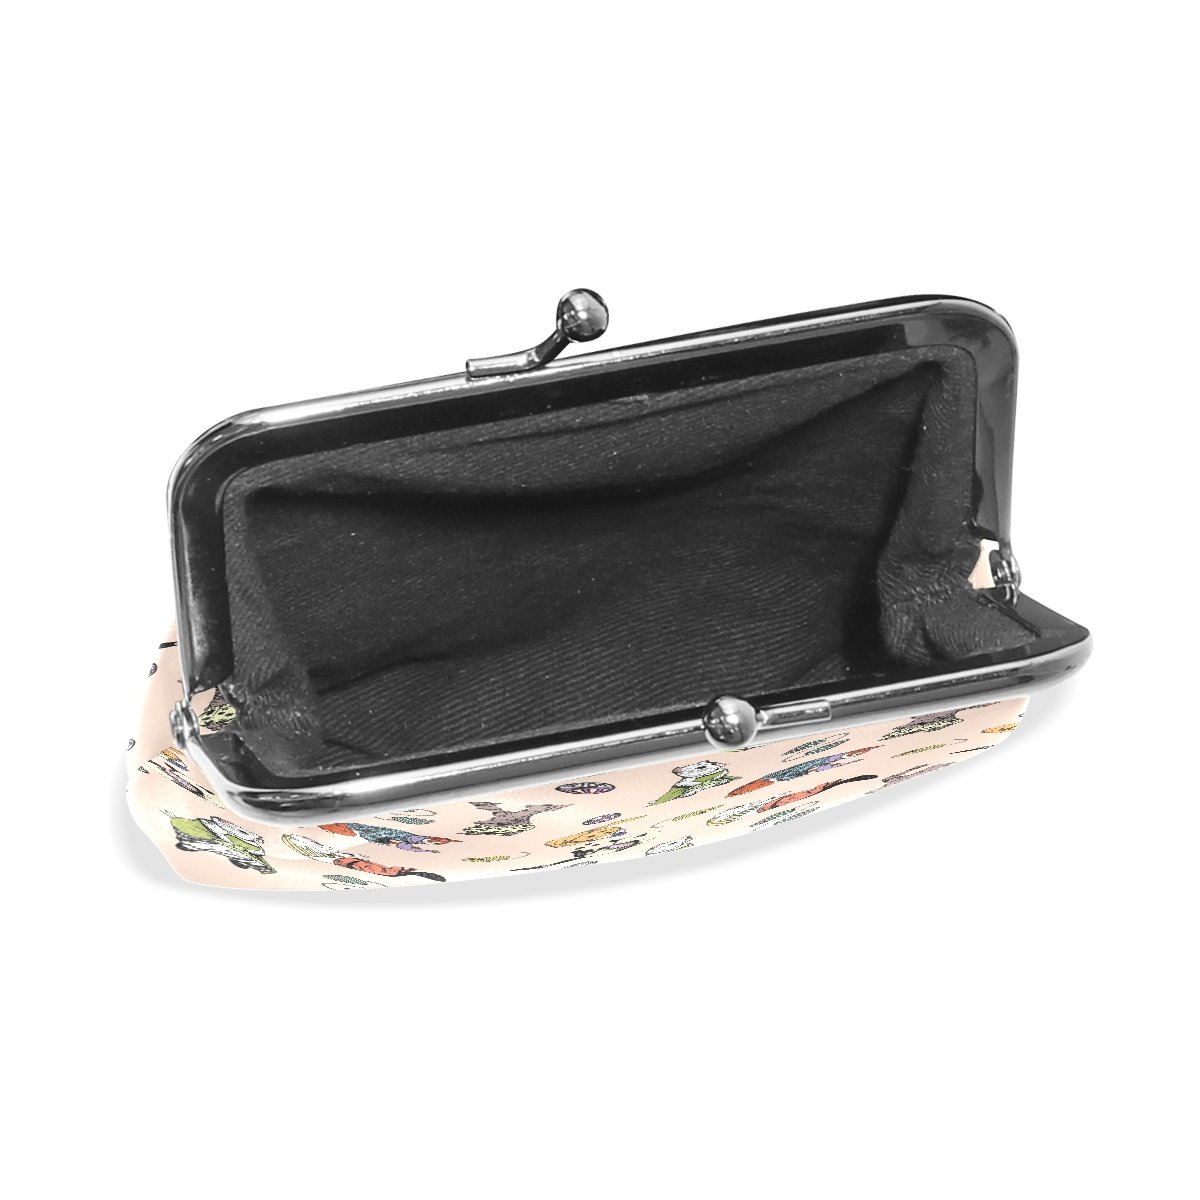 Sunlome Playing Cats Coin Purse Change Cash Bag Small Purse Wallets for Women Girl